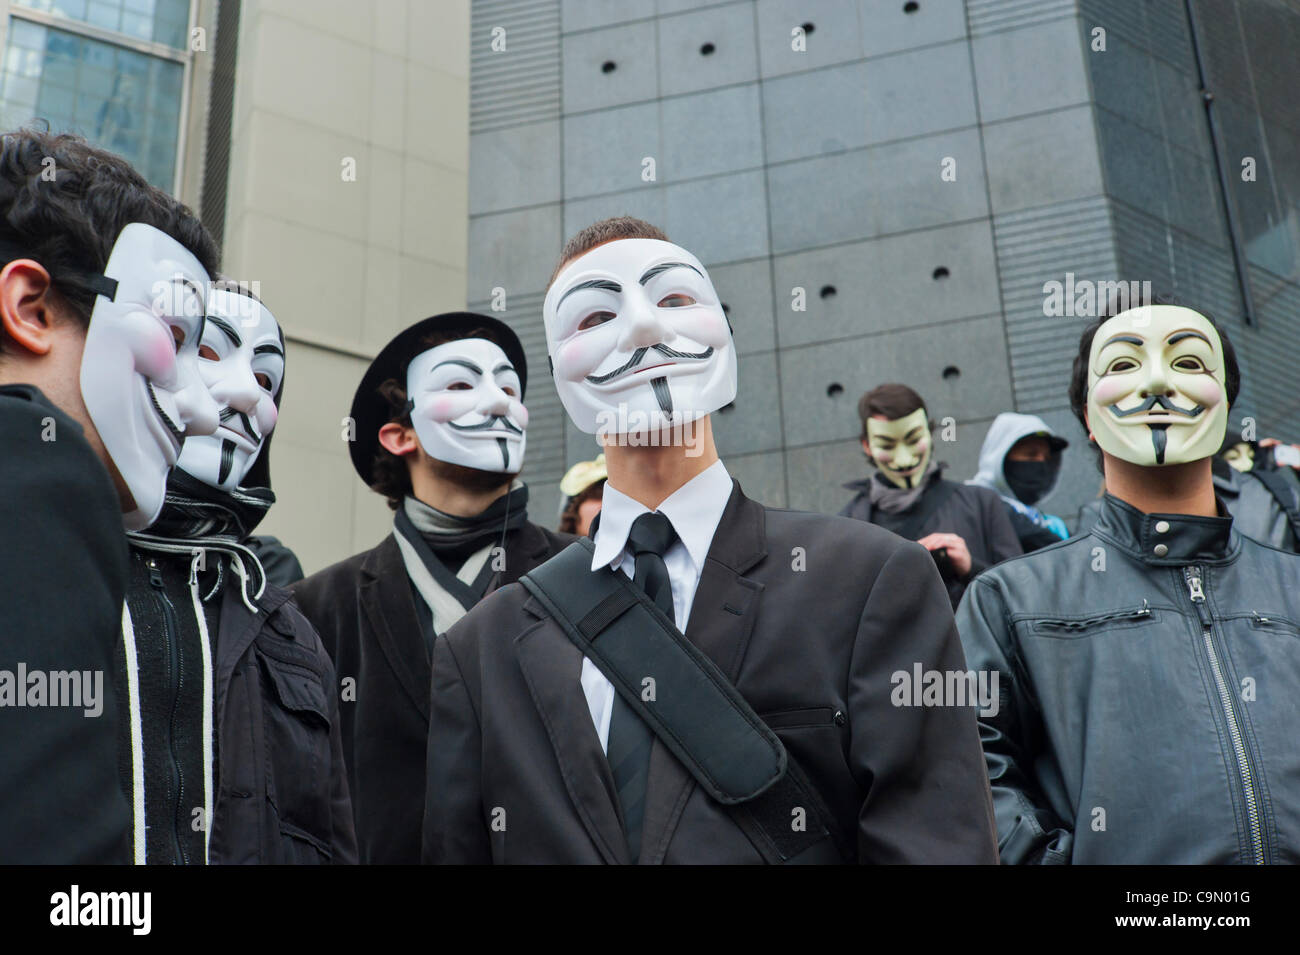 Anonymous Protests Against Internet Anti-Piracy Law, ACTA (Anti-Counterfeiting Trade Agree-ment), that threatens - Stock Image